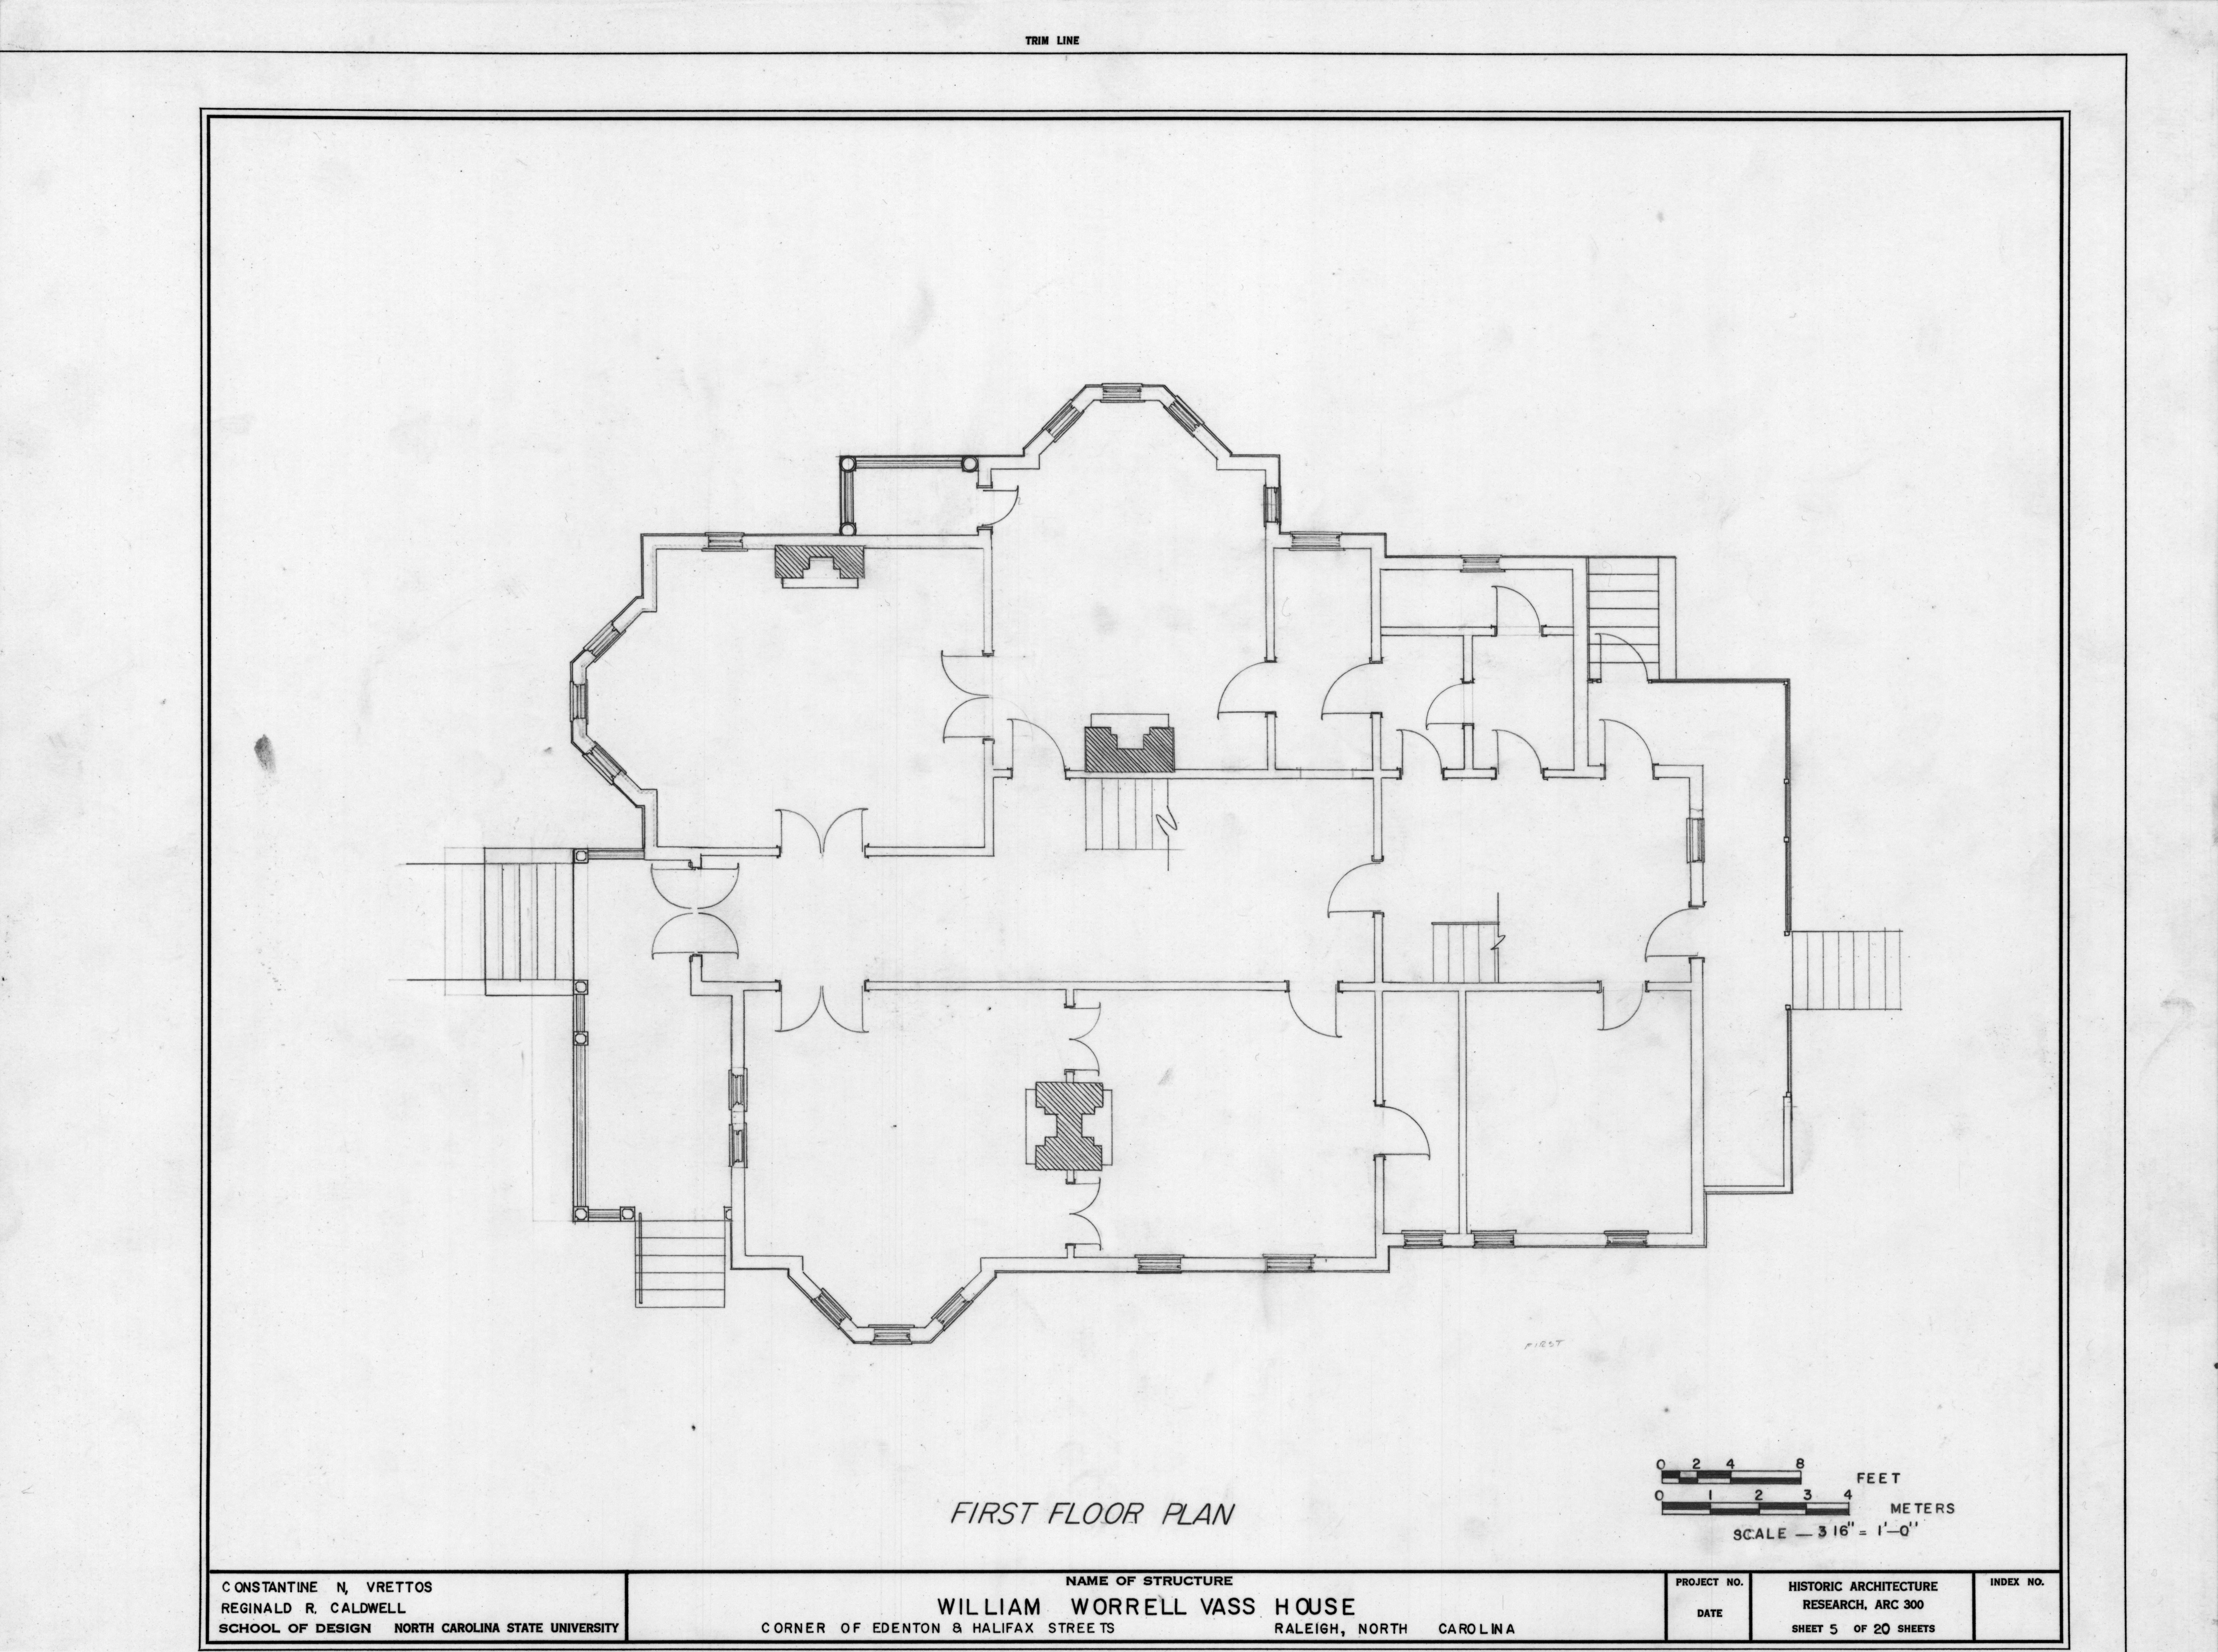 First Floor Plan William Worrell Vass House Raleigh